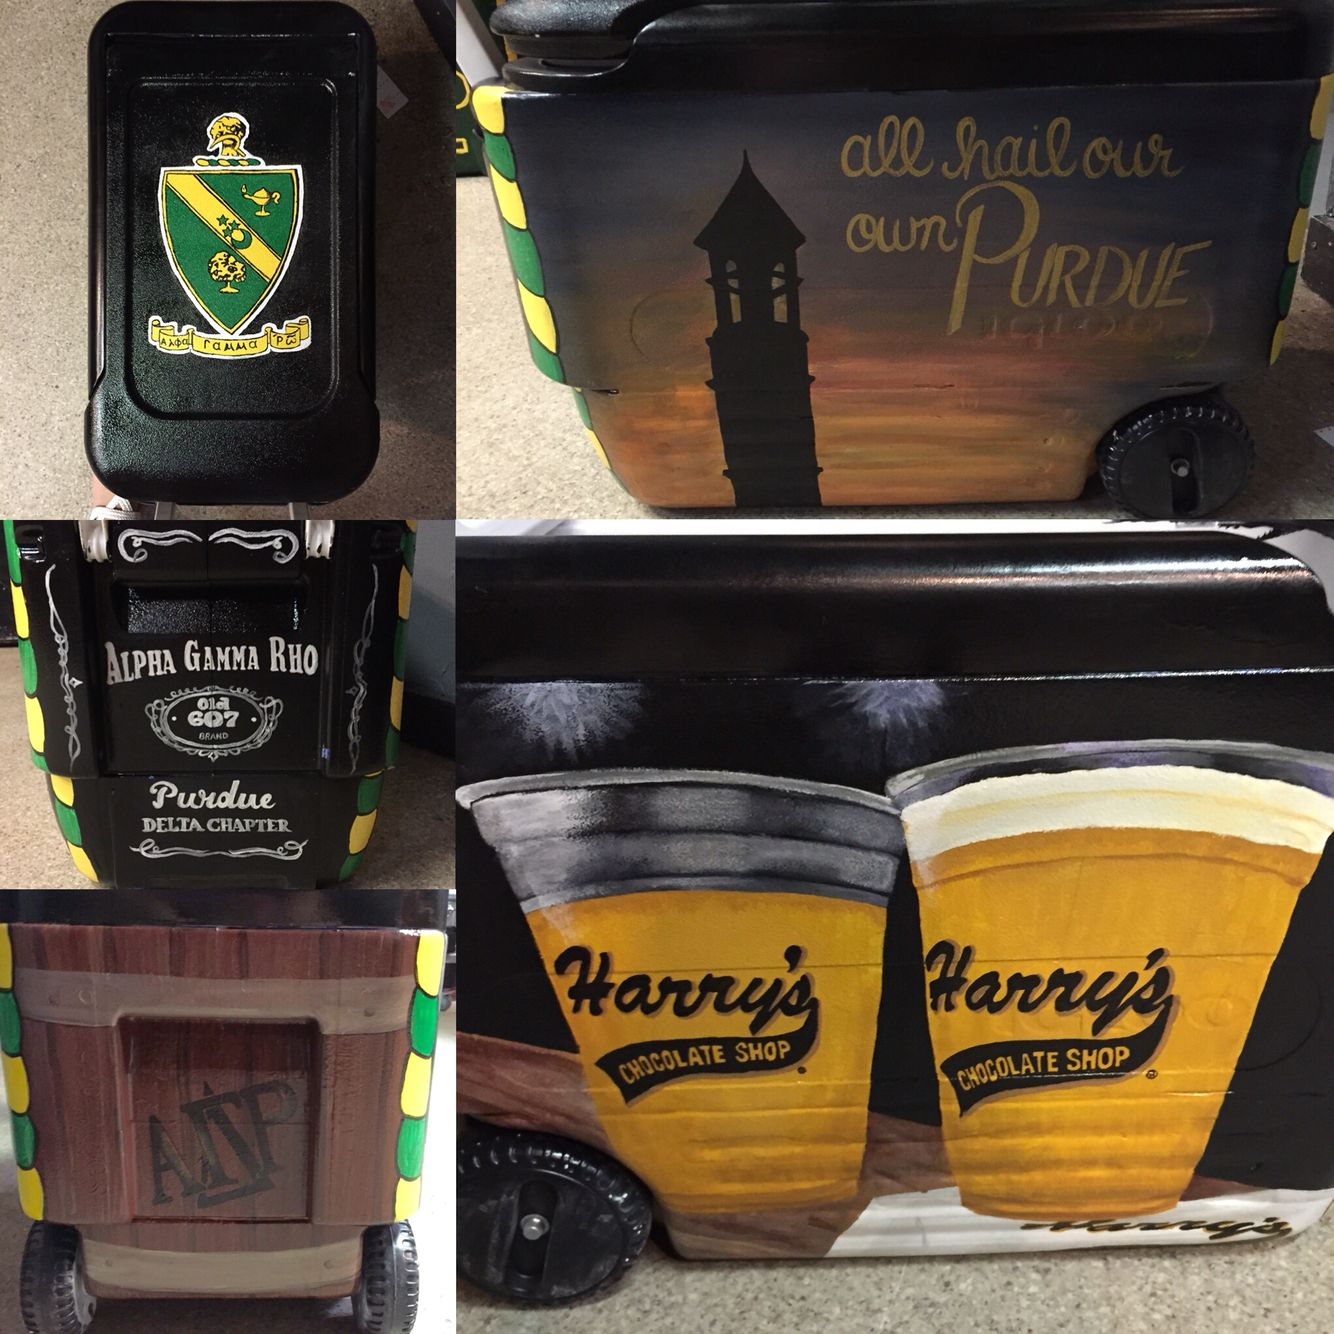 Color printing purdue - Alpha Gamma Rho Purdue Painted Cooler